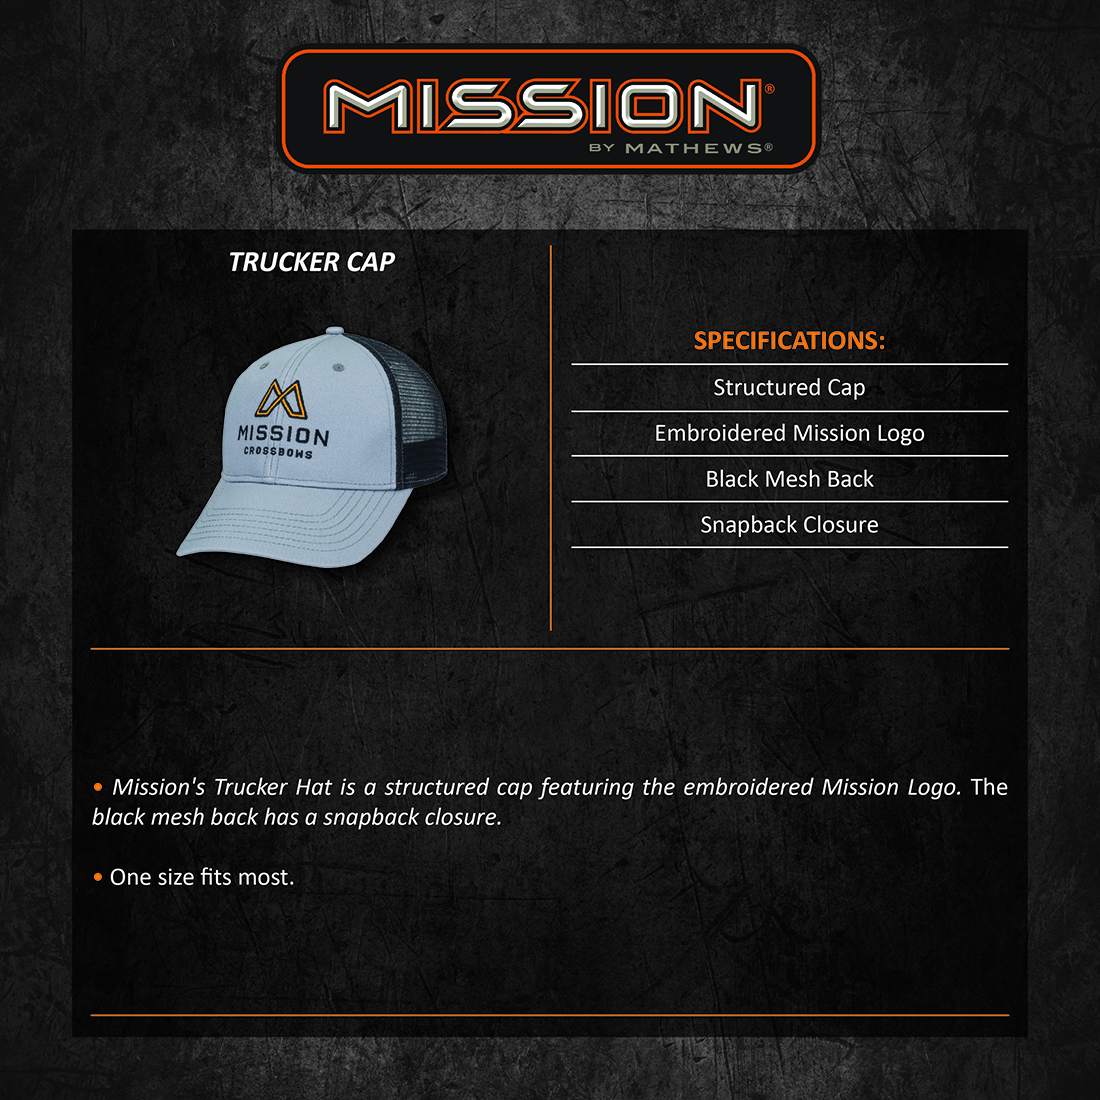 Mission_Trucker_Cap_Product_Description